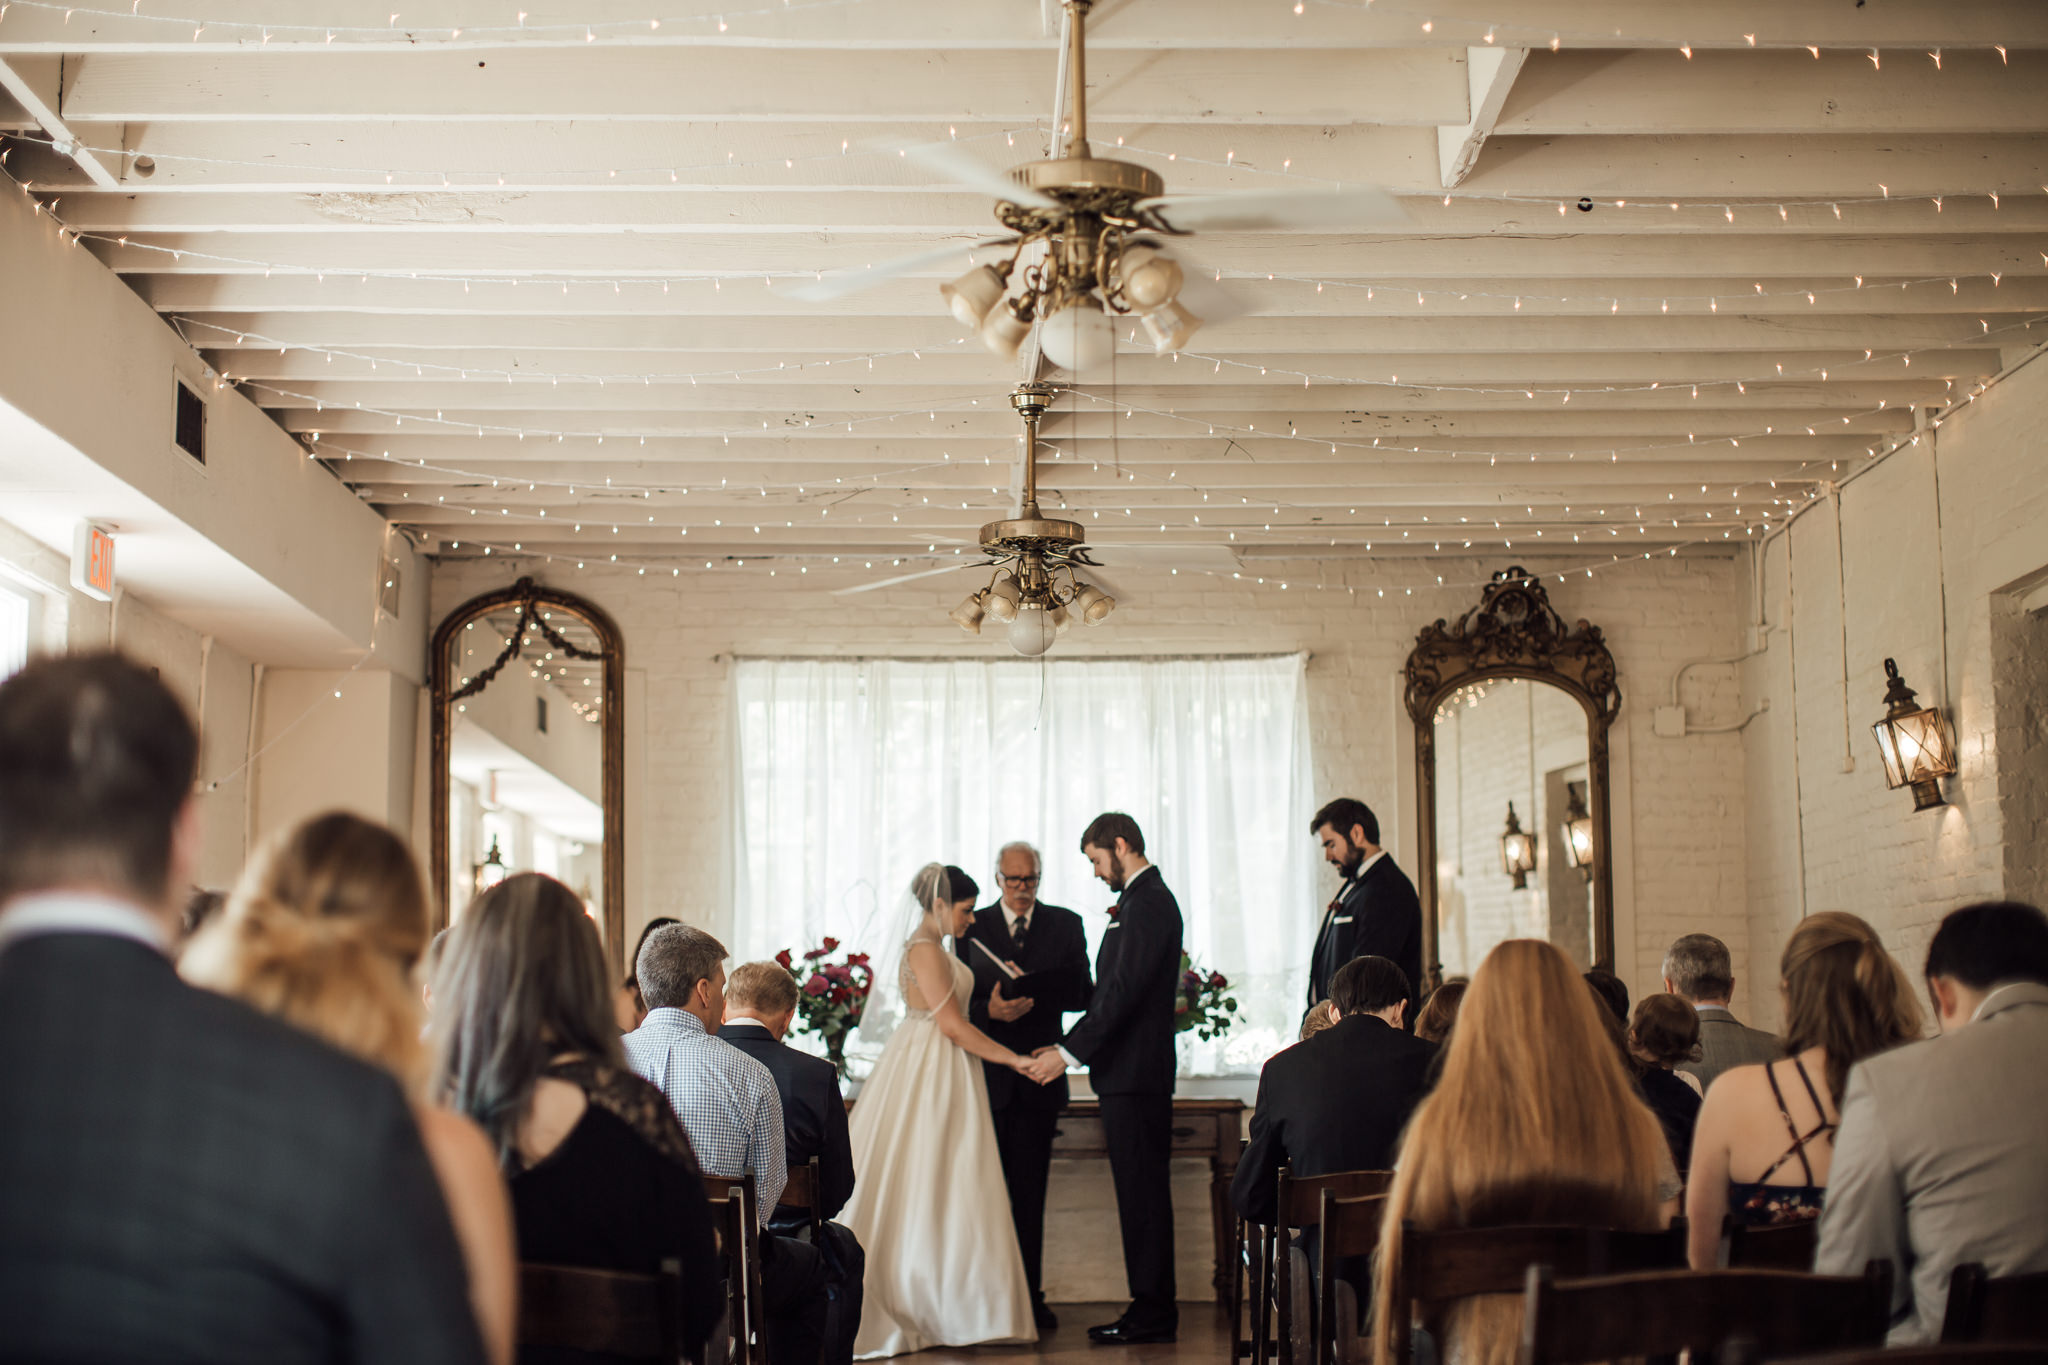 cassie-cook-photography-woodruff-fontain-house-memphis-wedding-venue-34.jpg